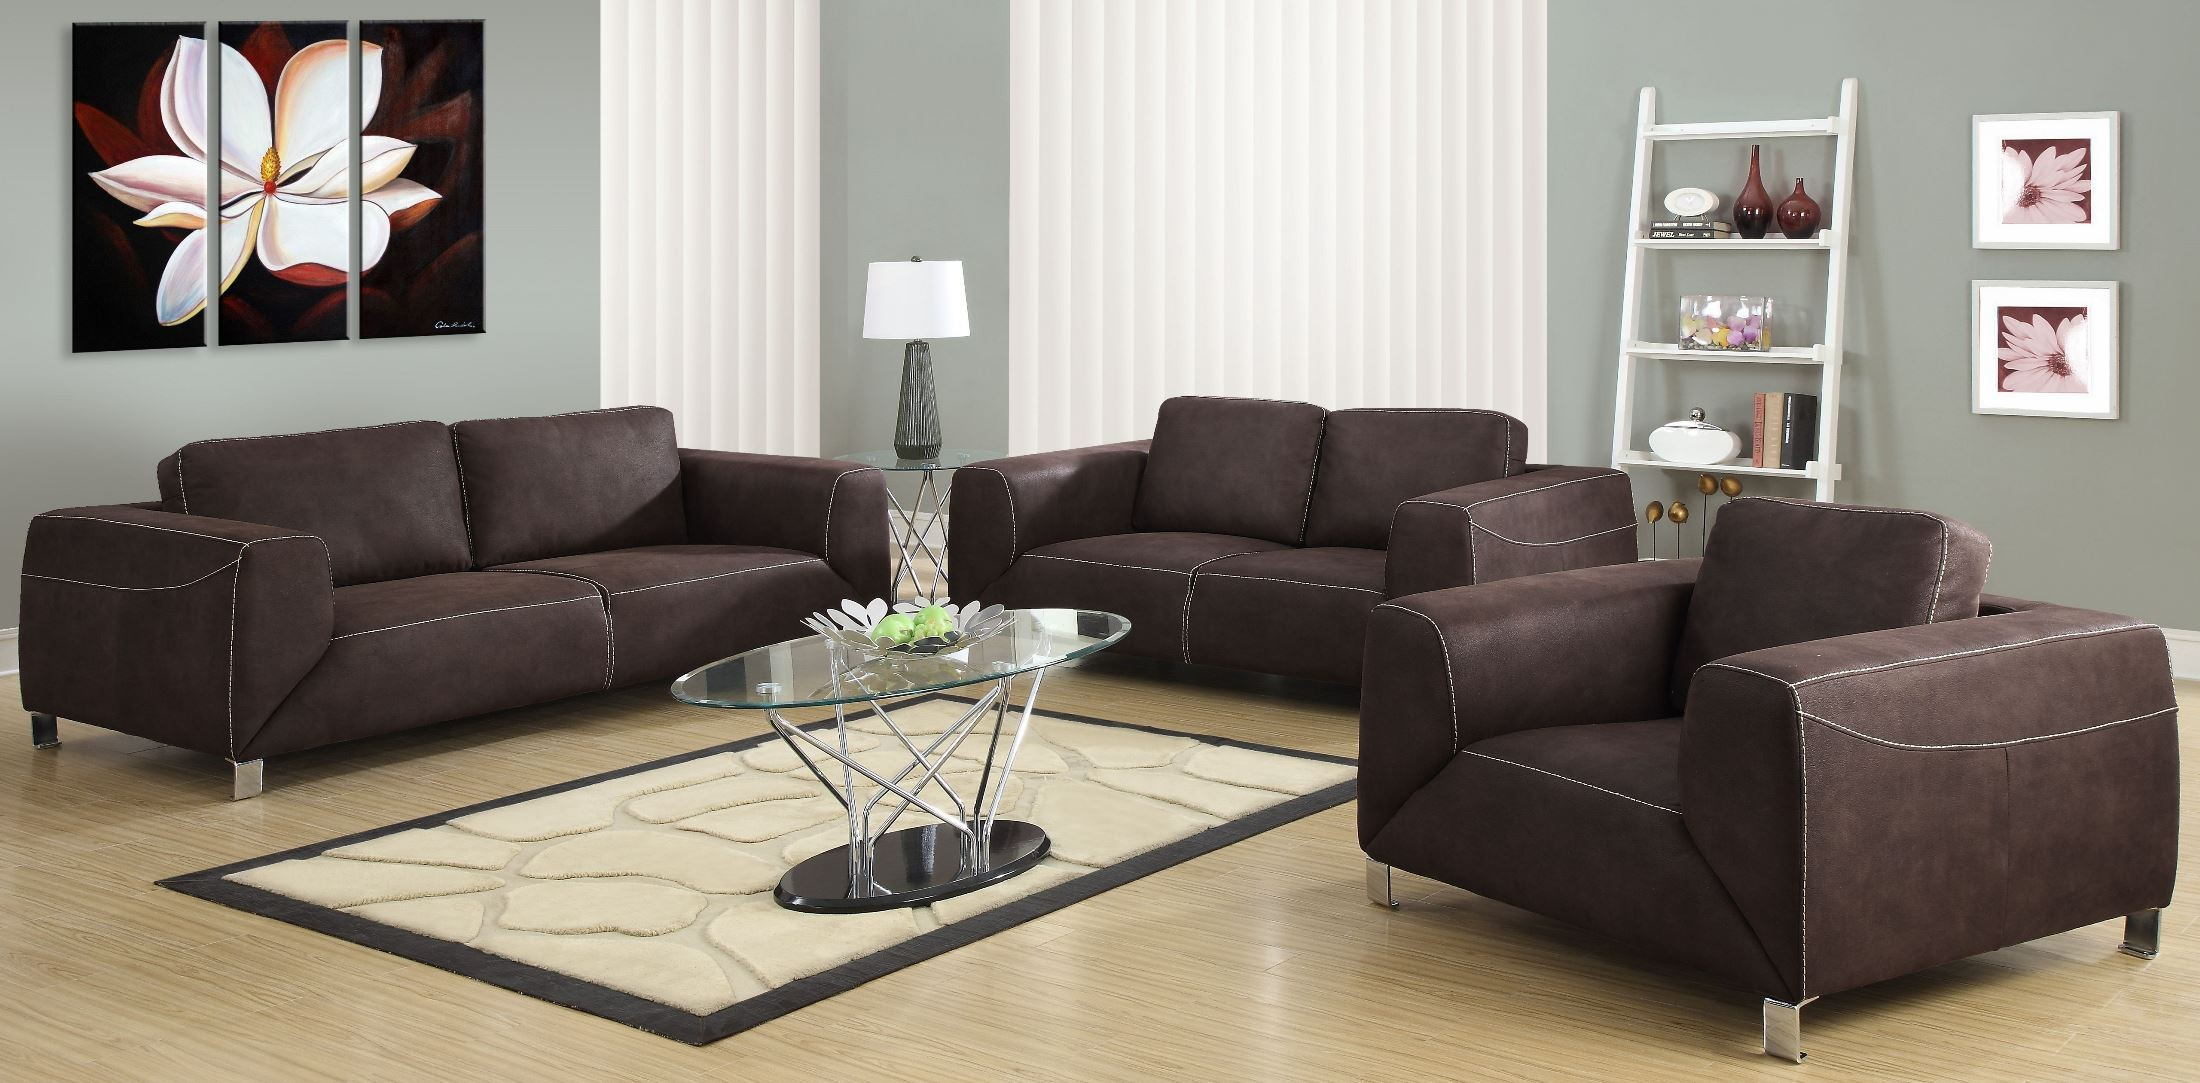 Chocolate brown micro suede living room set from monarch 8513br coleman furniture for Microsuede living room furniture